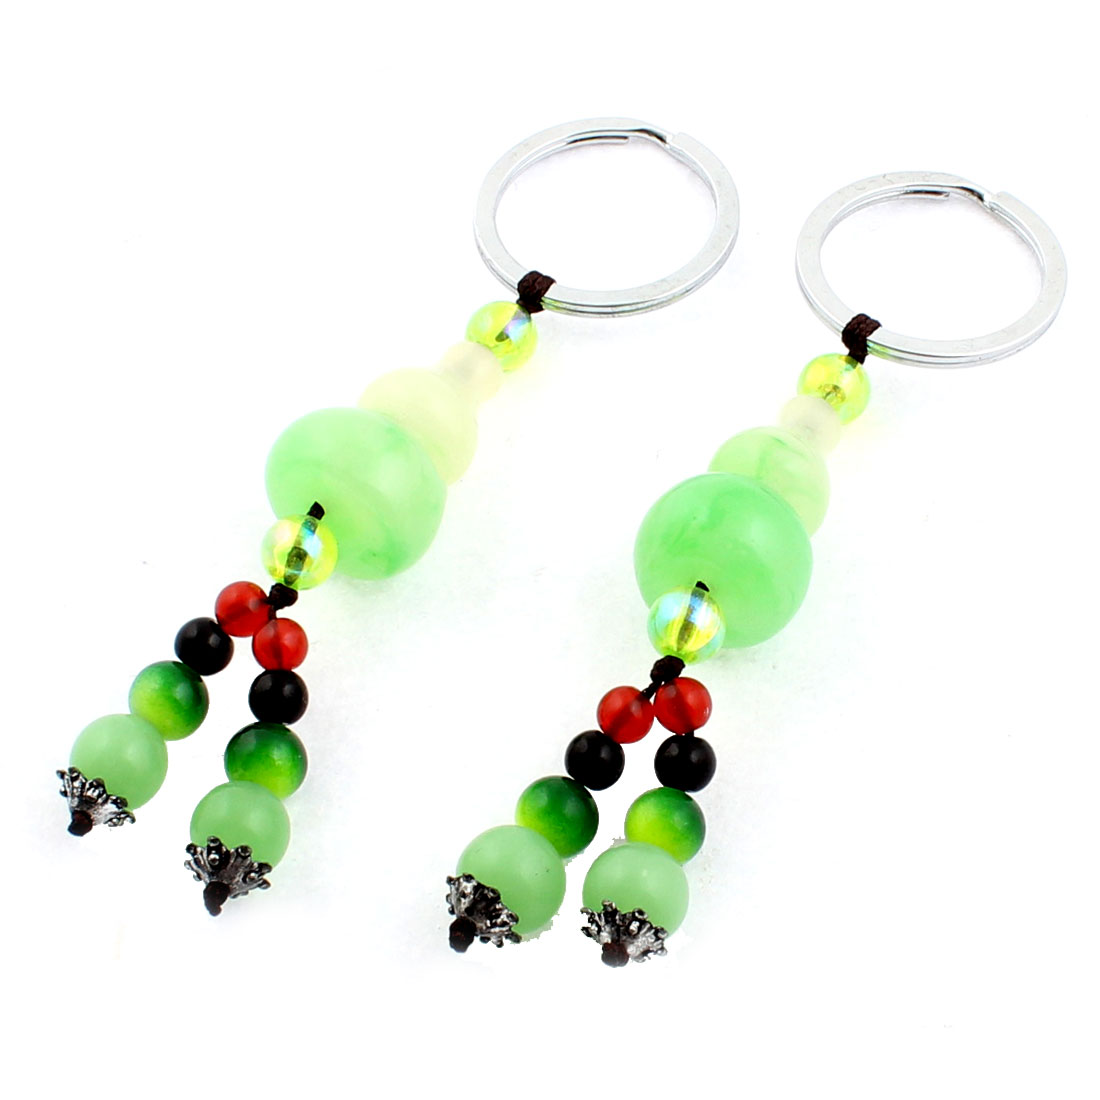 Faux Jade Calabash Pendant Split Ring Keychain Keyring Key Holder Green 2pcs